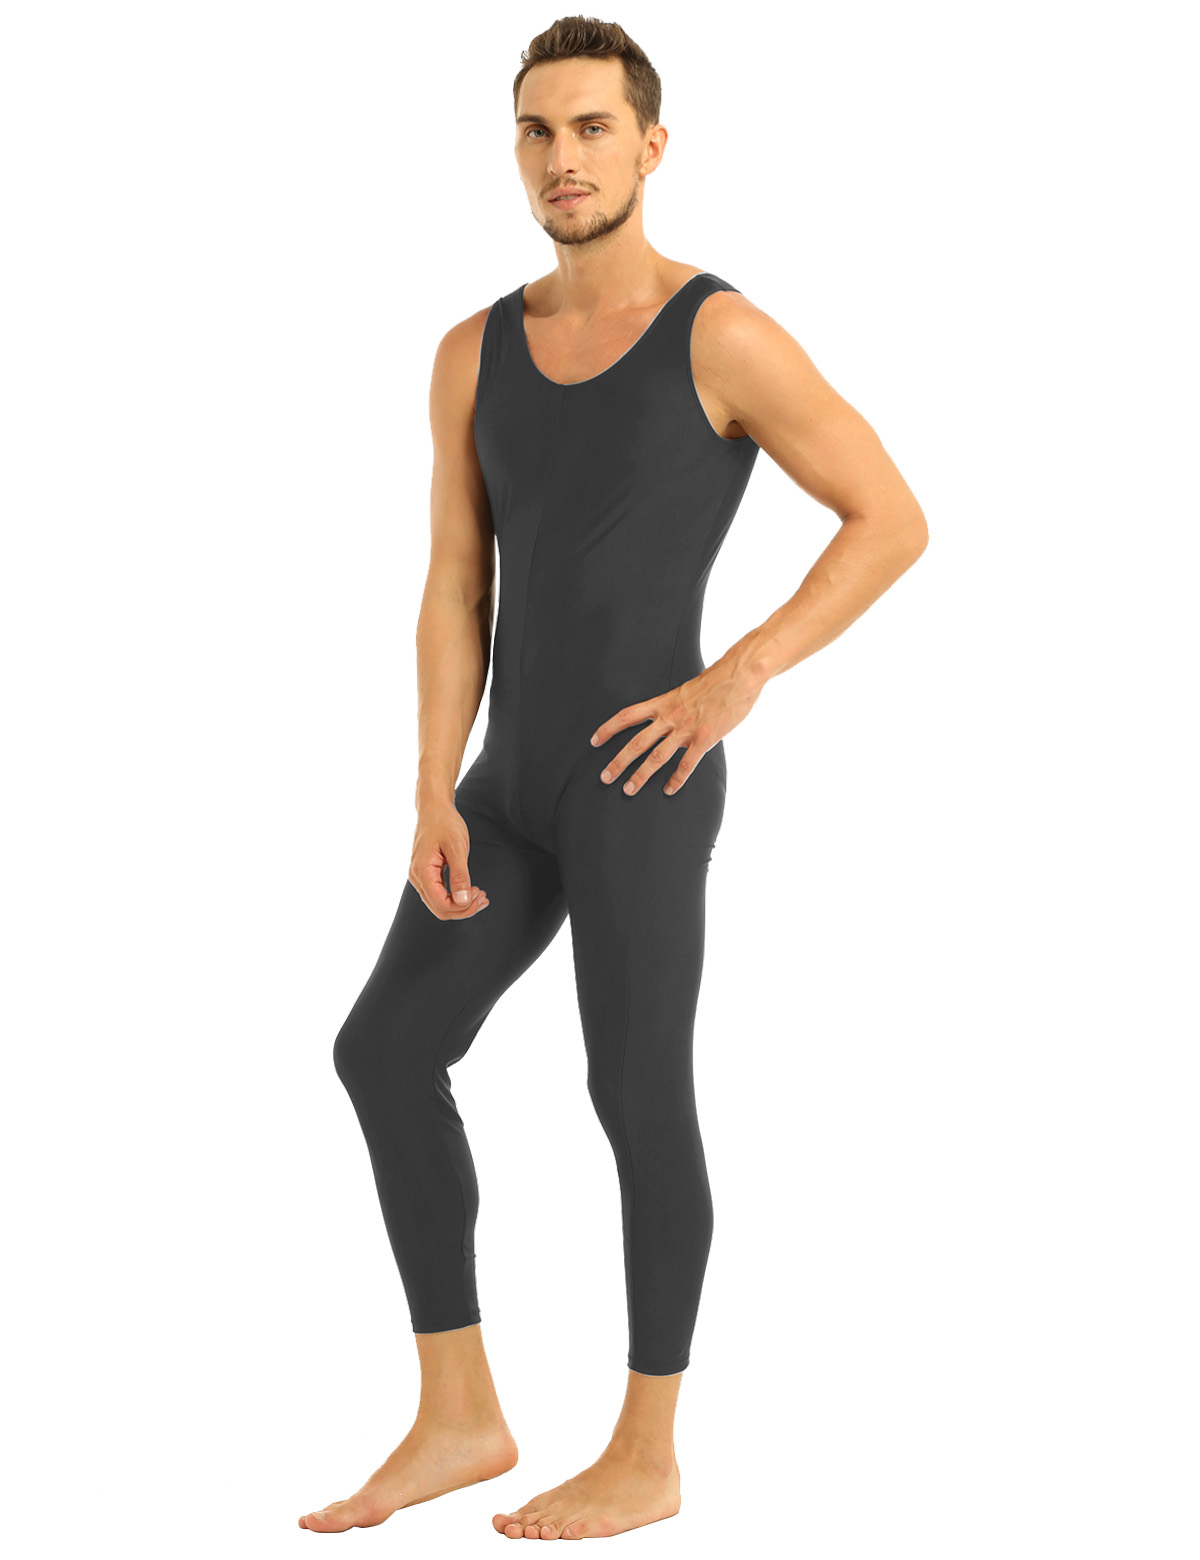 Men Sleeveless Leotard Bodysuit Lycra Tights Leggings for Ballet Dance Vest Teddy Sports Unitard Catsuit Male Dancewear Jumpsuit 15